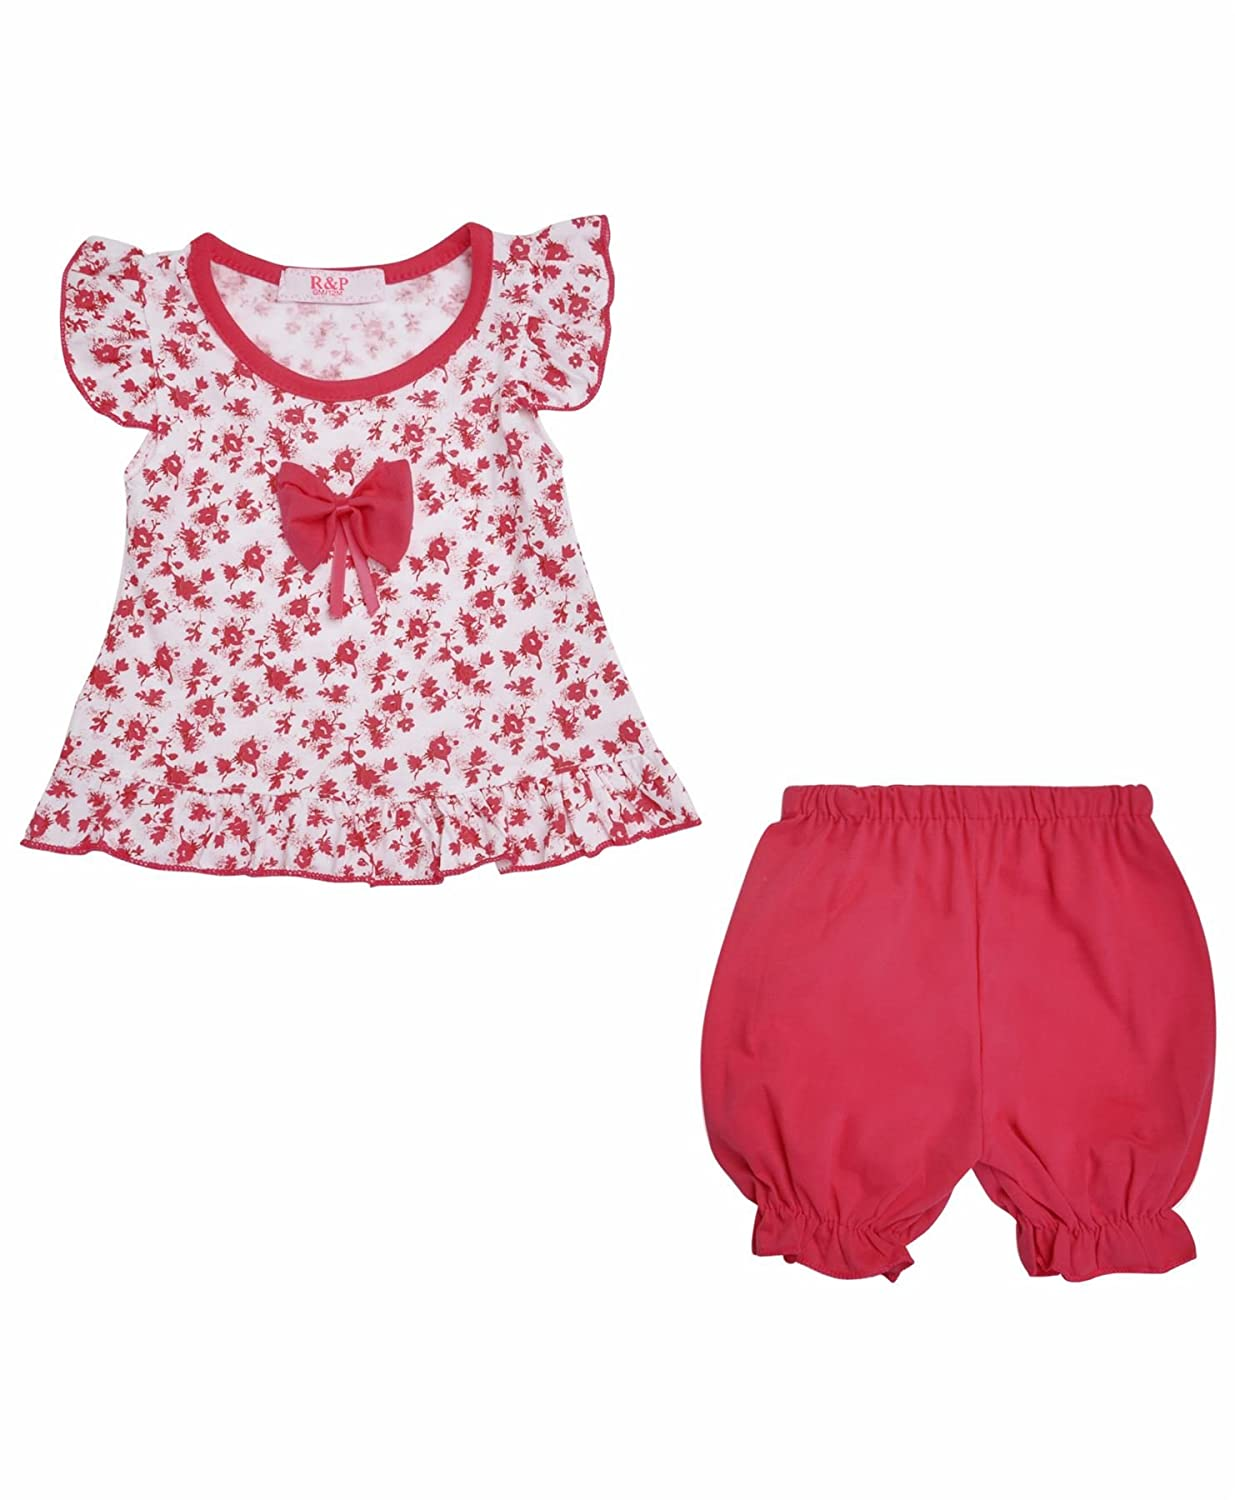 LotMart Baby Girls Dress Top and Shorts 2 Piece Set Floral